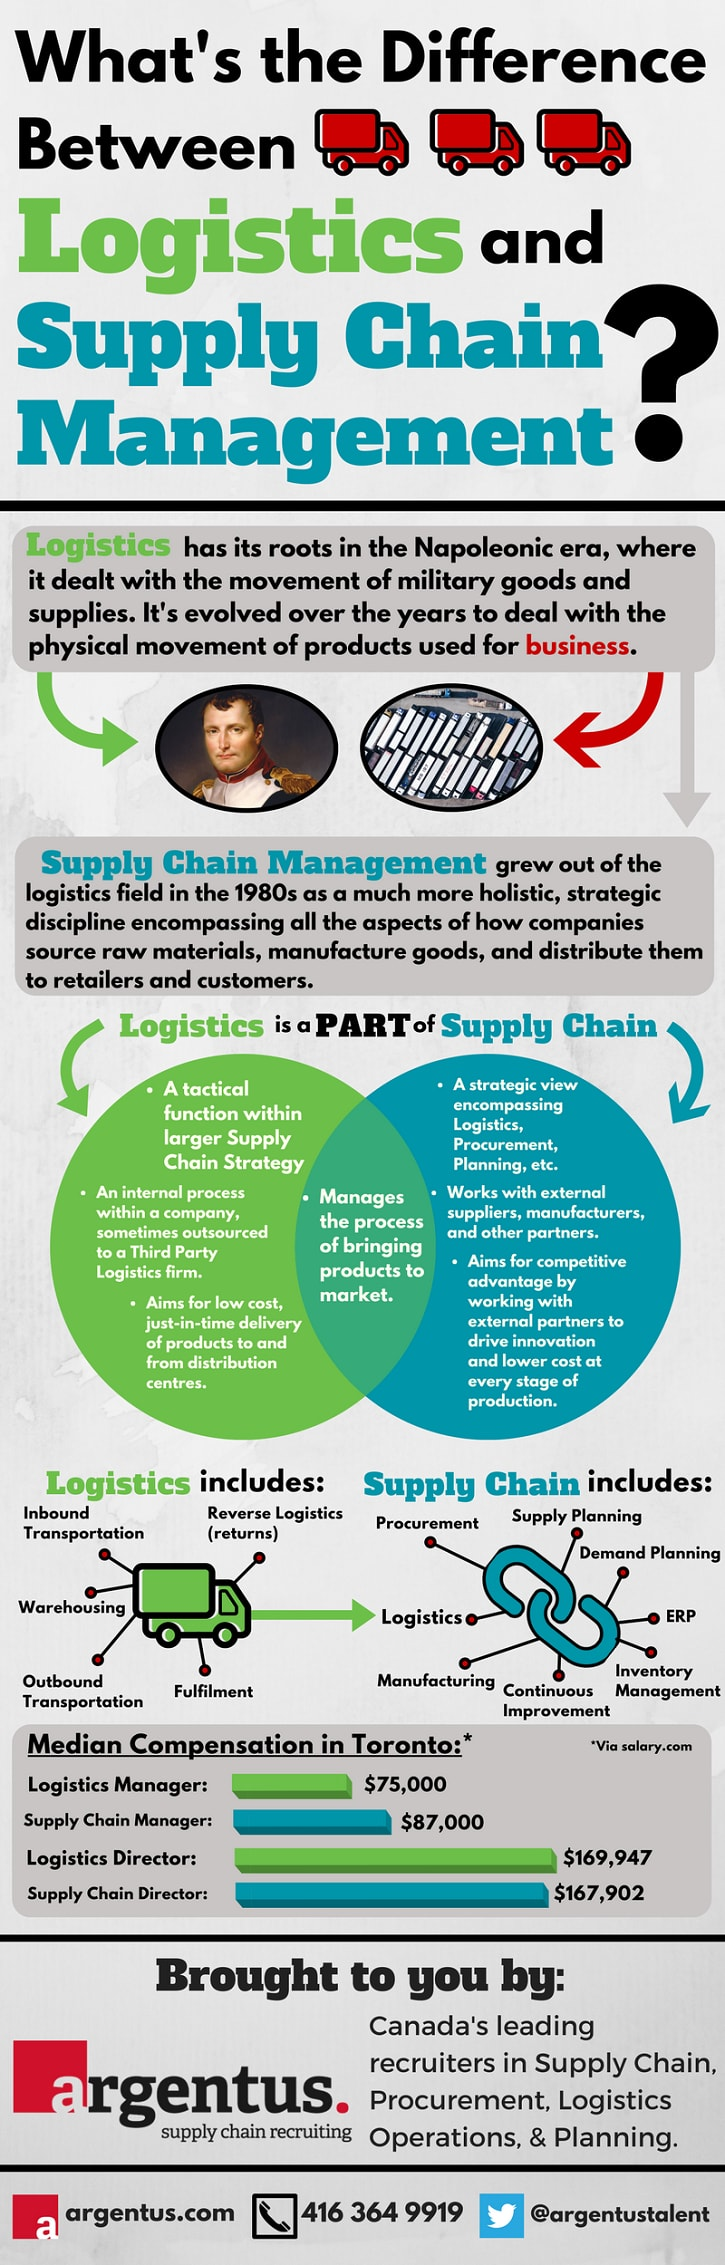 internal logistics as part of supply